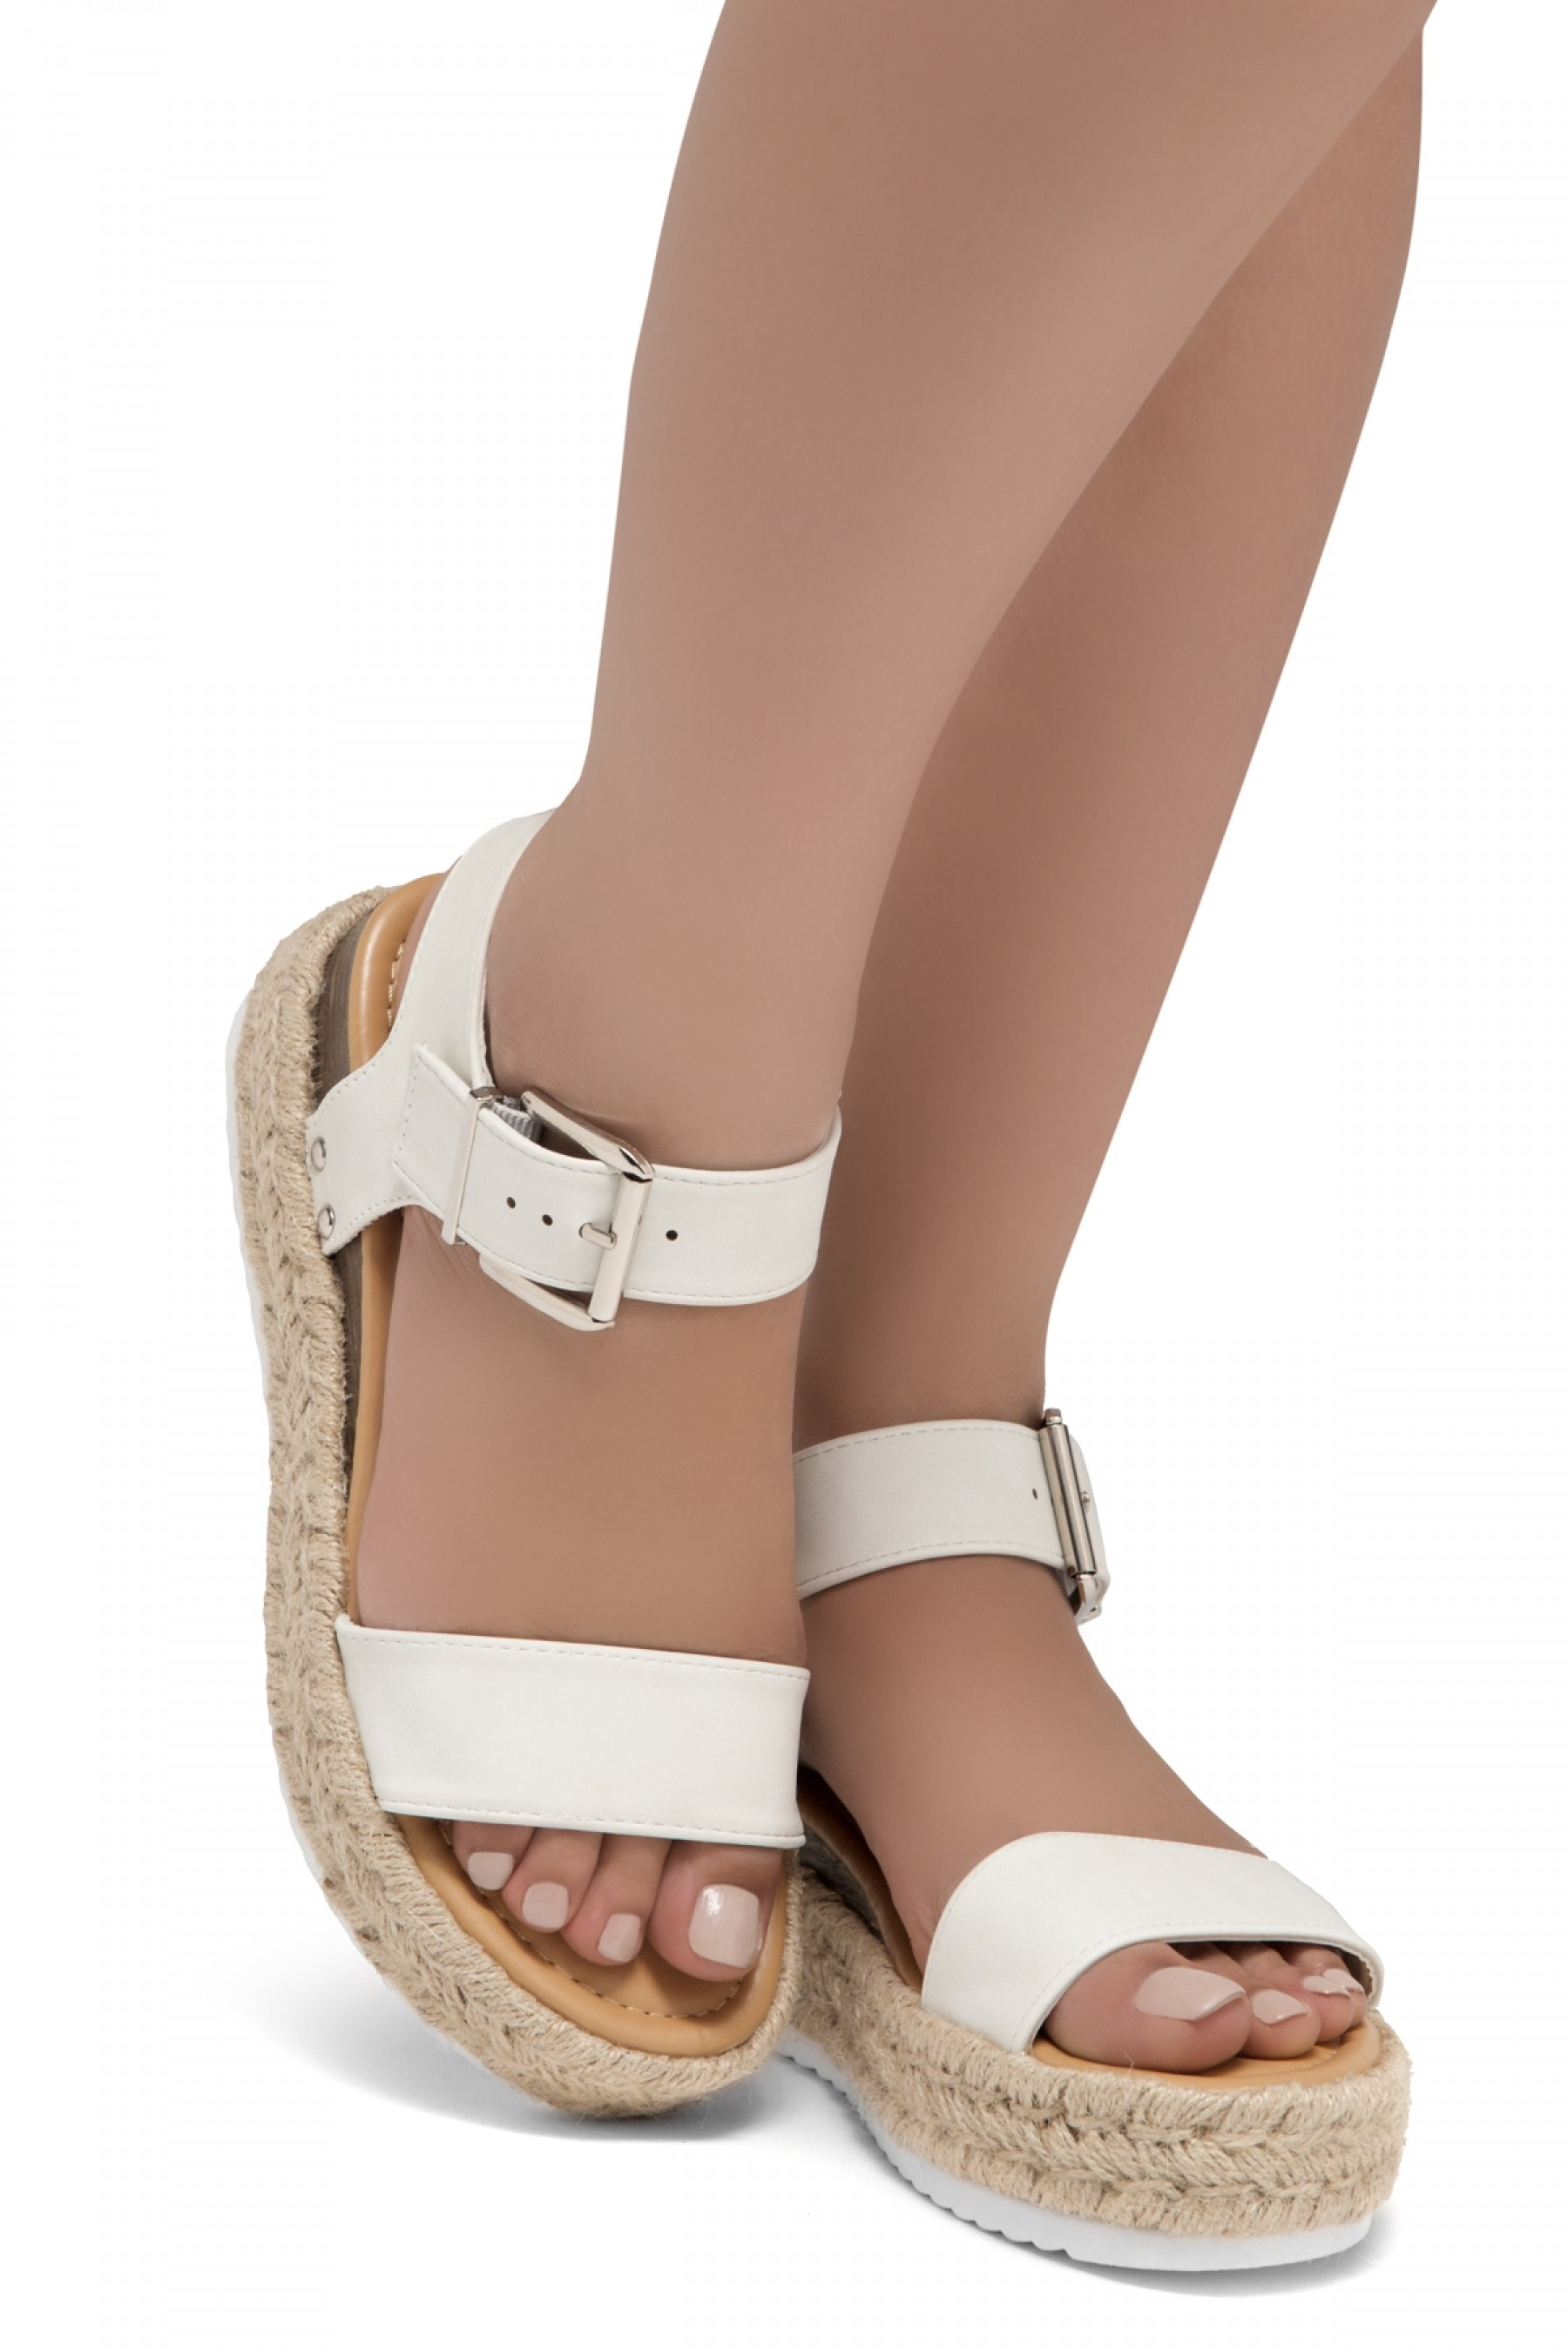 ShoeLand Alysa Womens Open Toe Ankle Strap Platform Wedge Sandals(OffWhite)